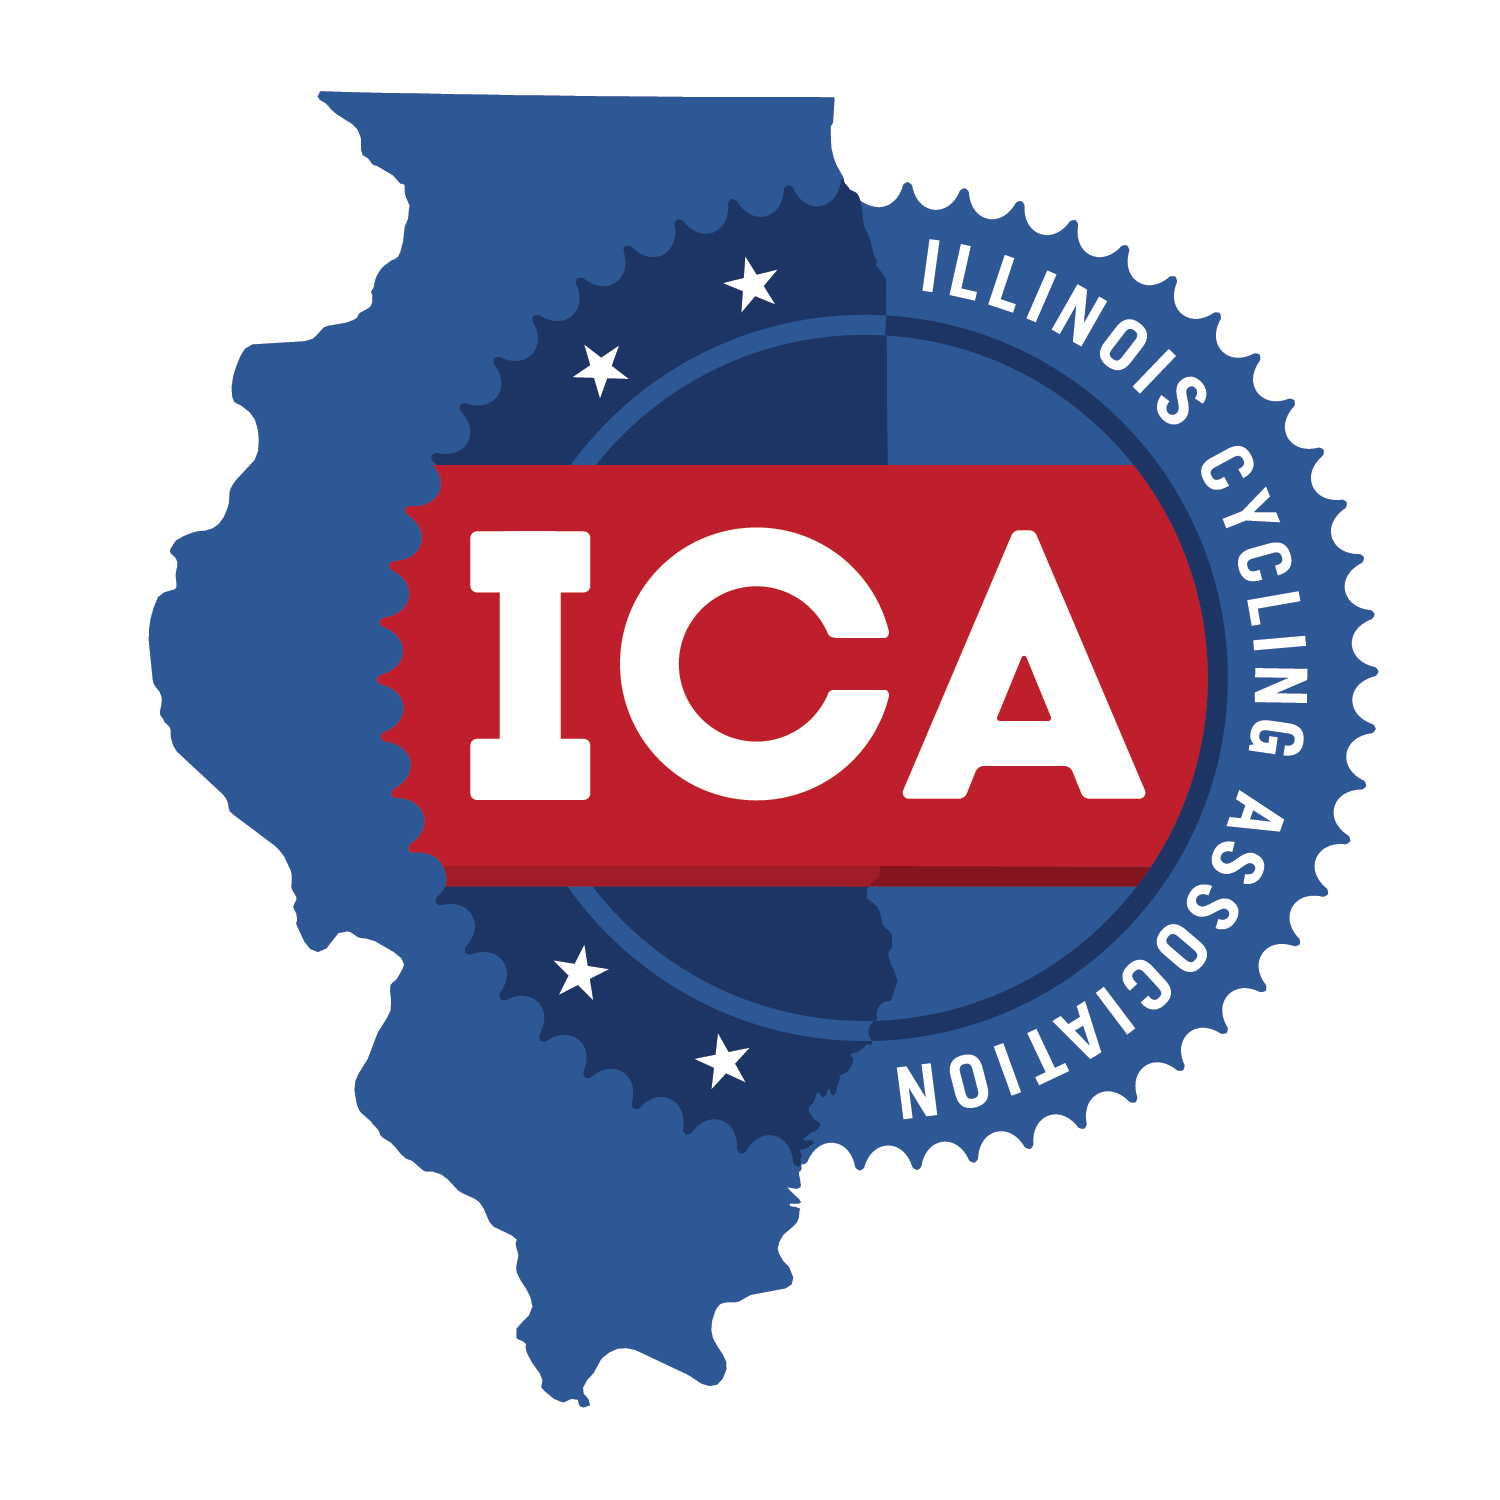 ICA_logo_final_RGB (3).jpg